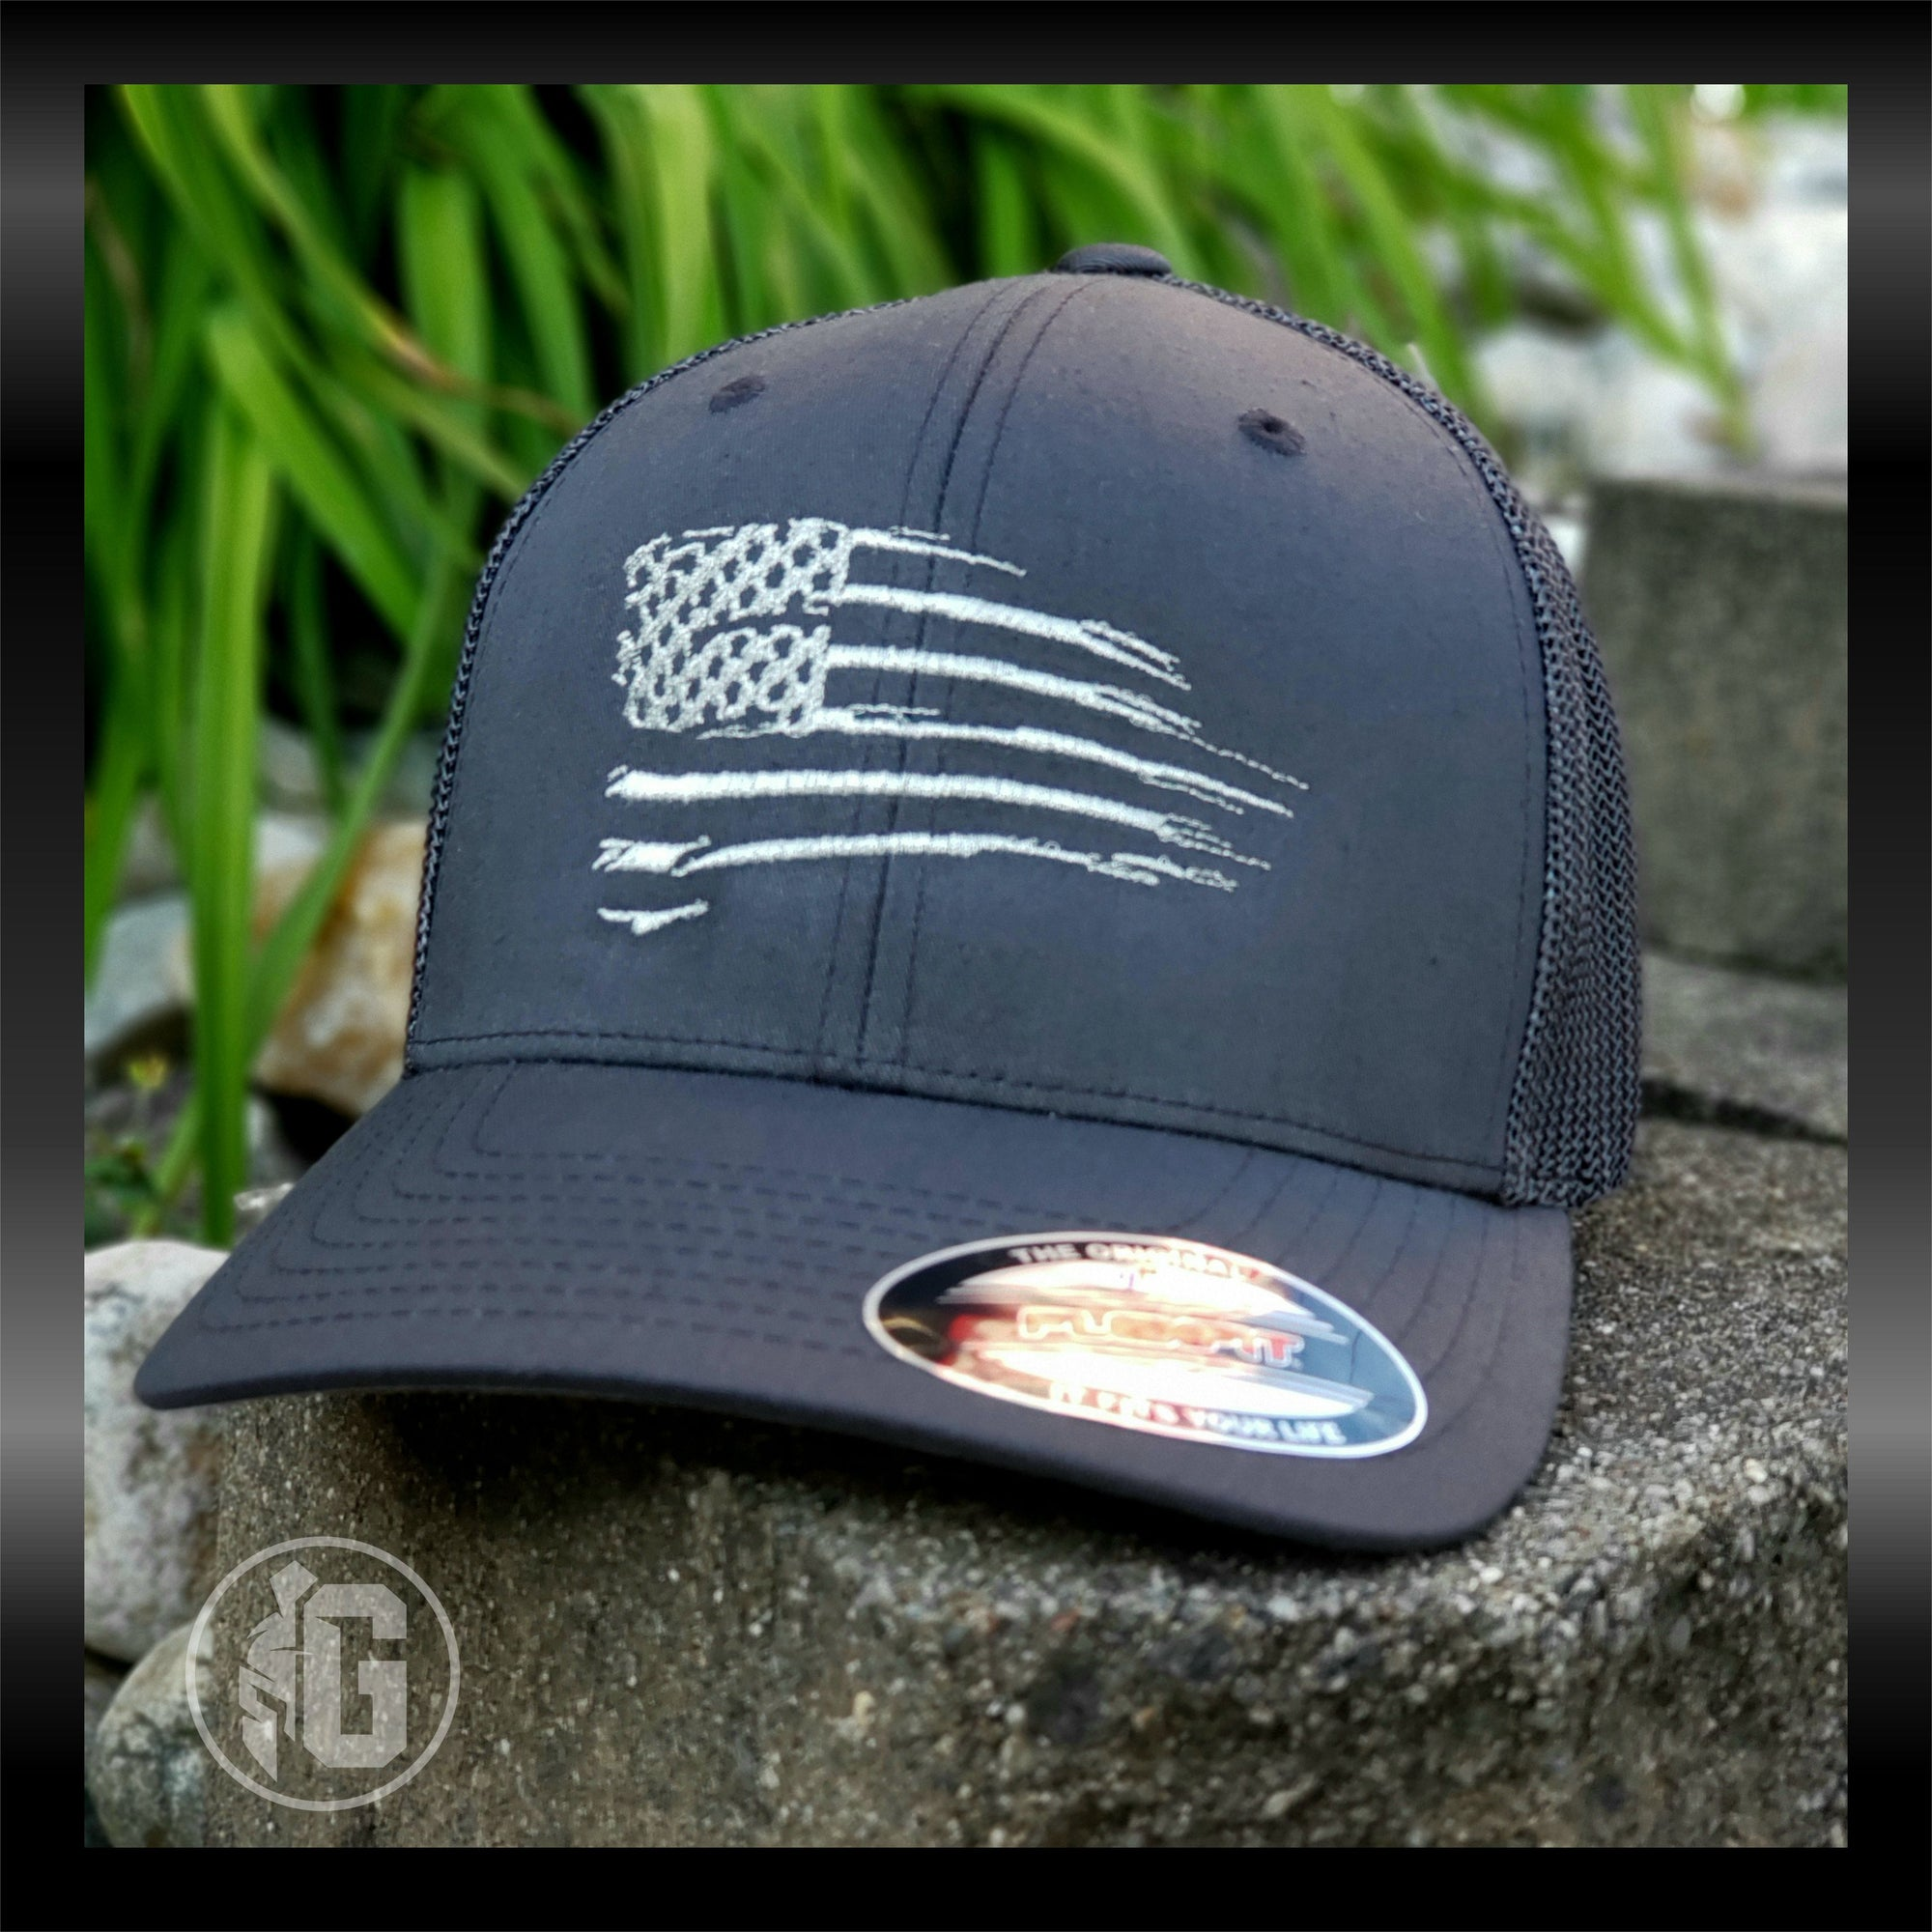 Distressed American Flag Embroidered Hat | Grit Gear Apparel ®